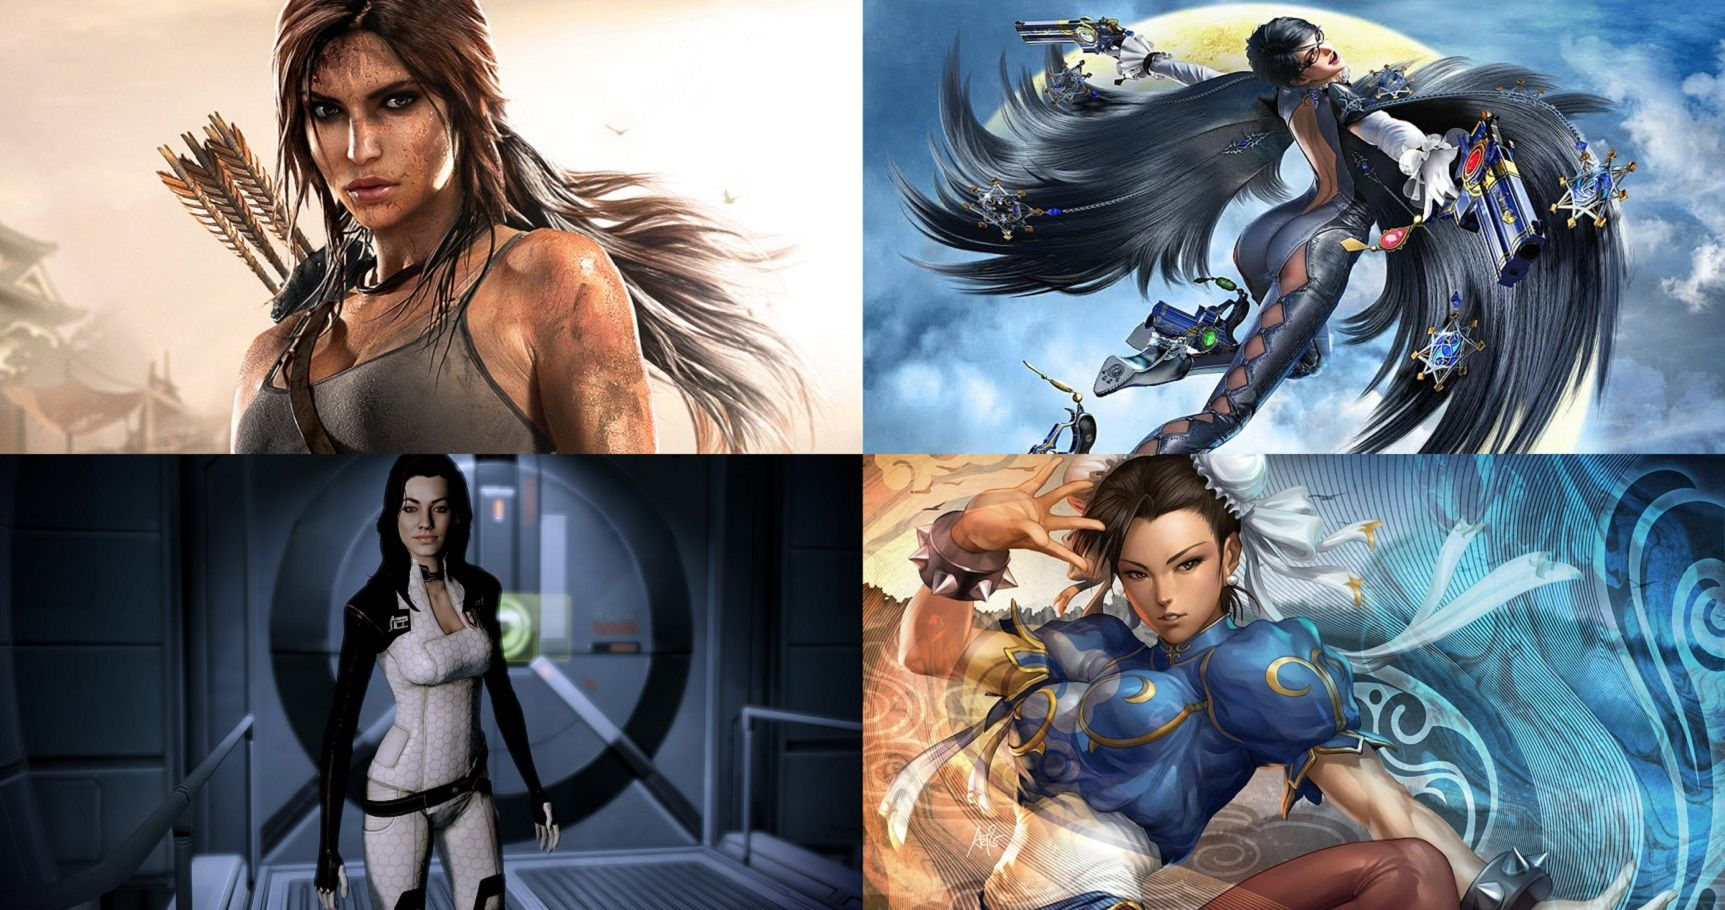 Free Babes Games the 20 hottest video game babes of all time | therichest